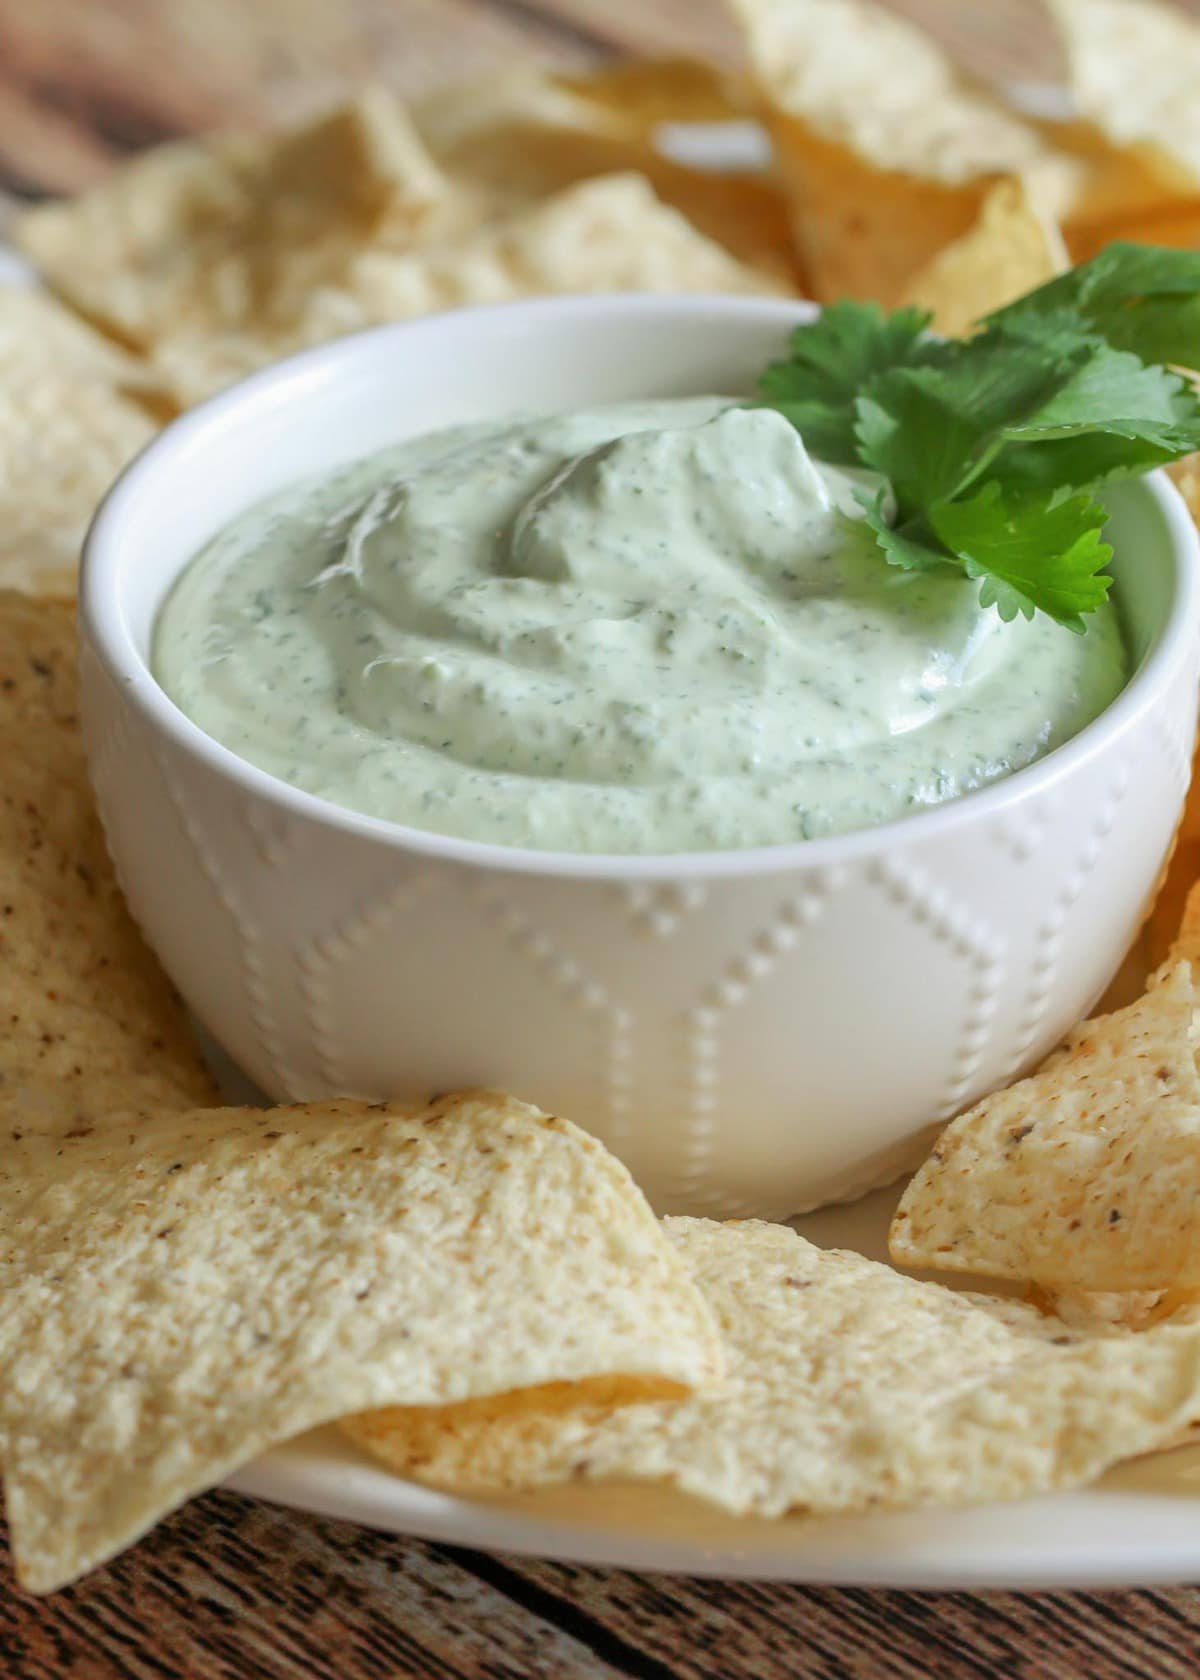 Avocado Lime Ranch Dip with tortilla chips on the side